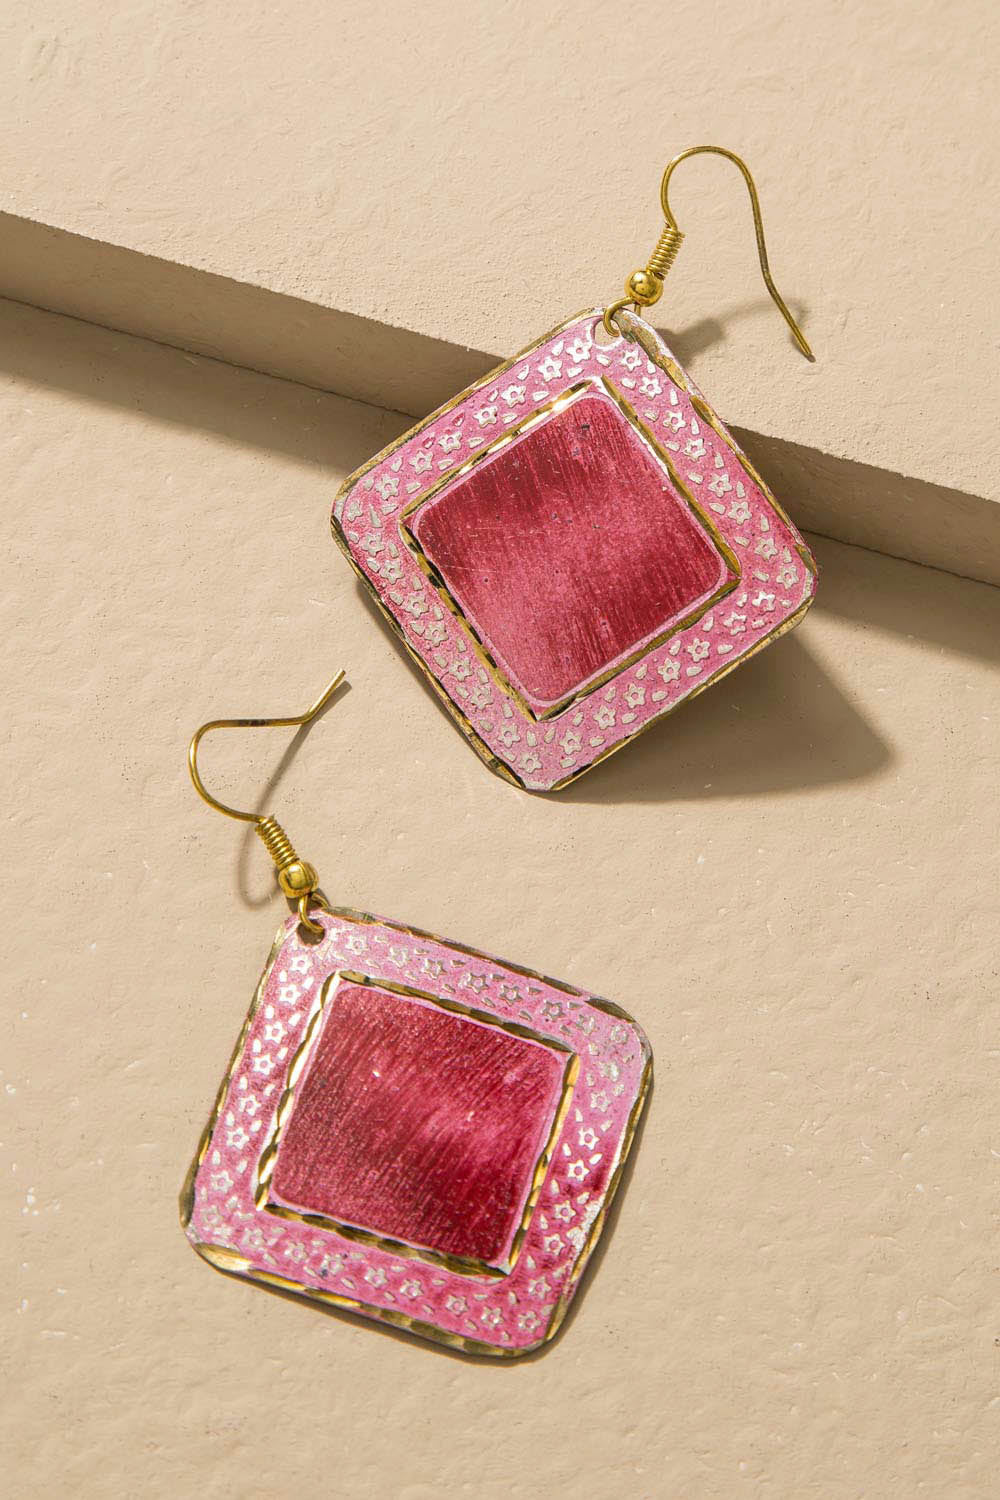 Type 3 Strawberry Ice Earrings